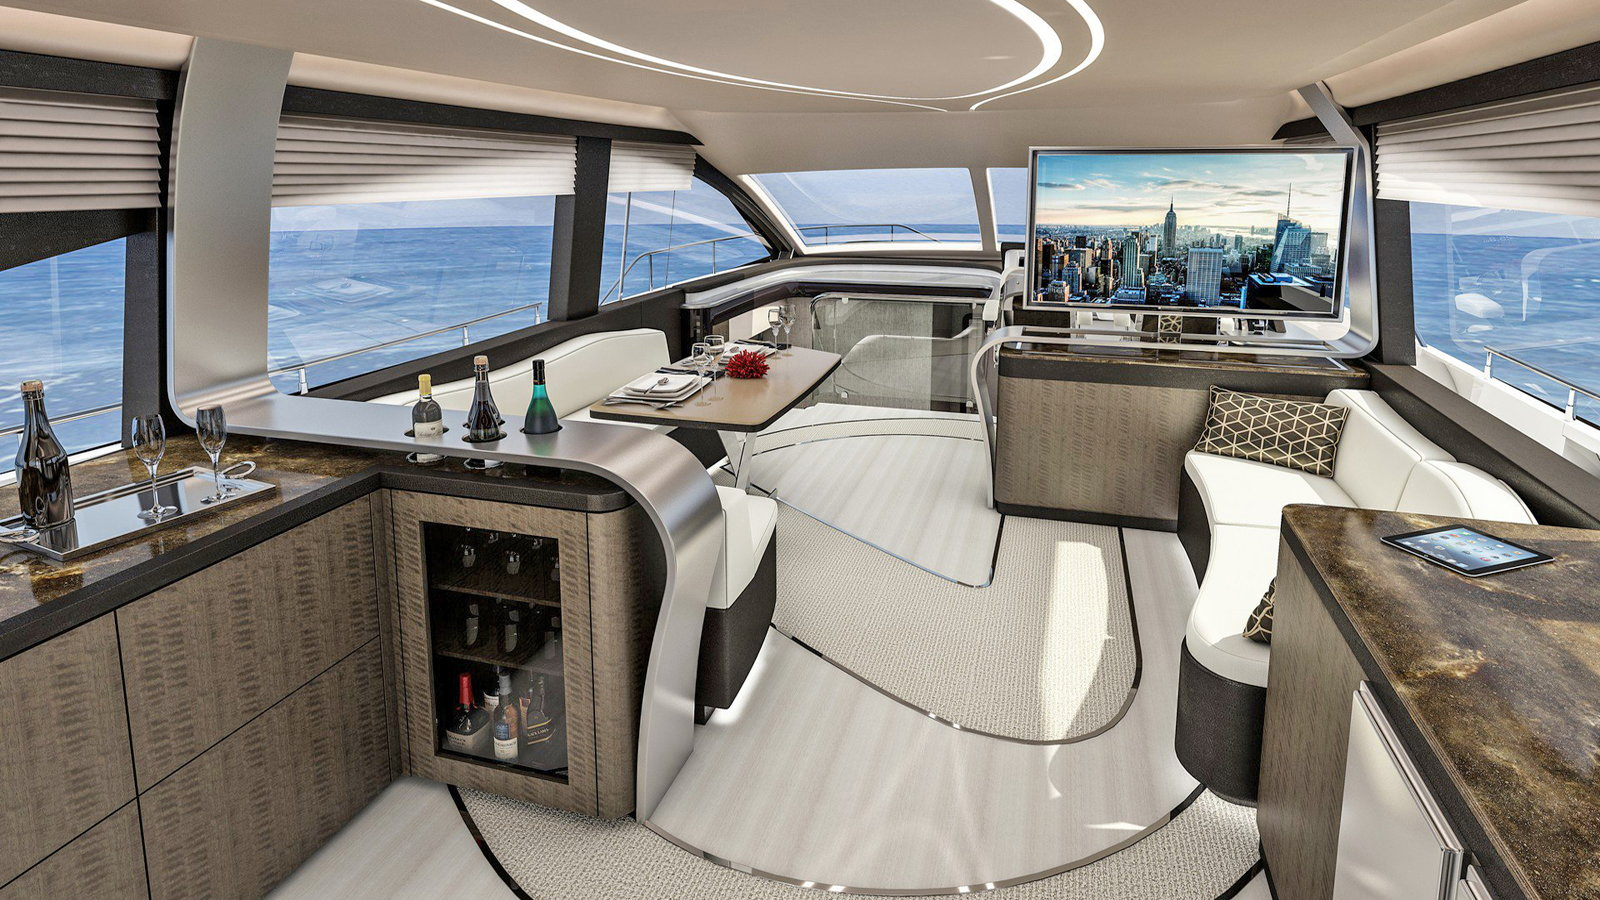 LY 650 Luxo Yacht Because the Water Needs a Lexus Too